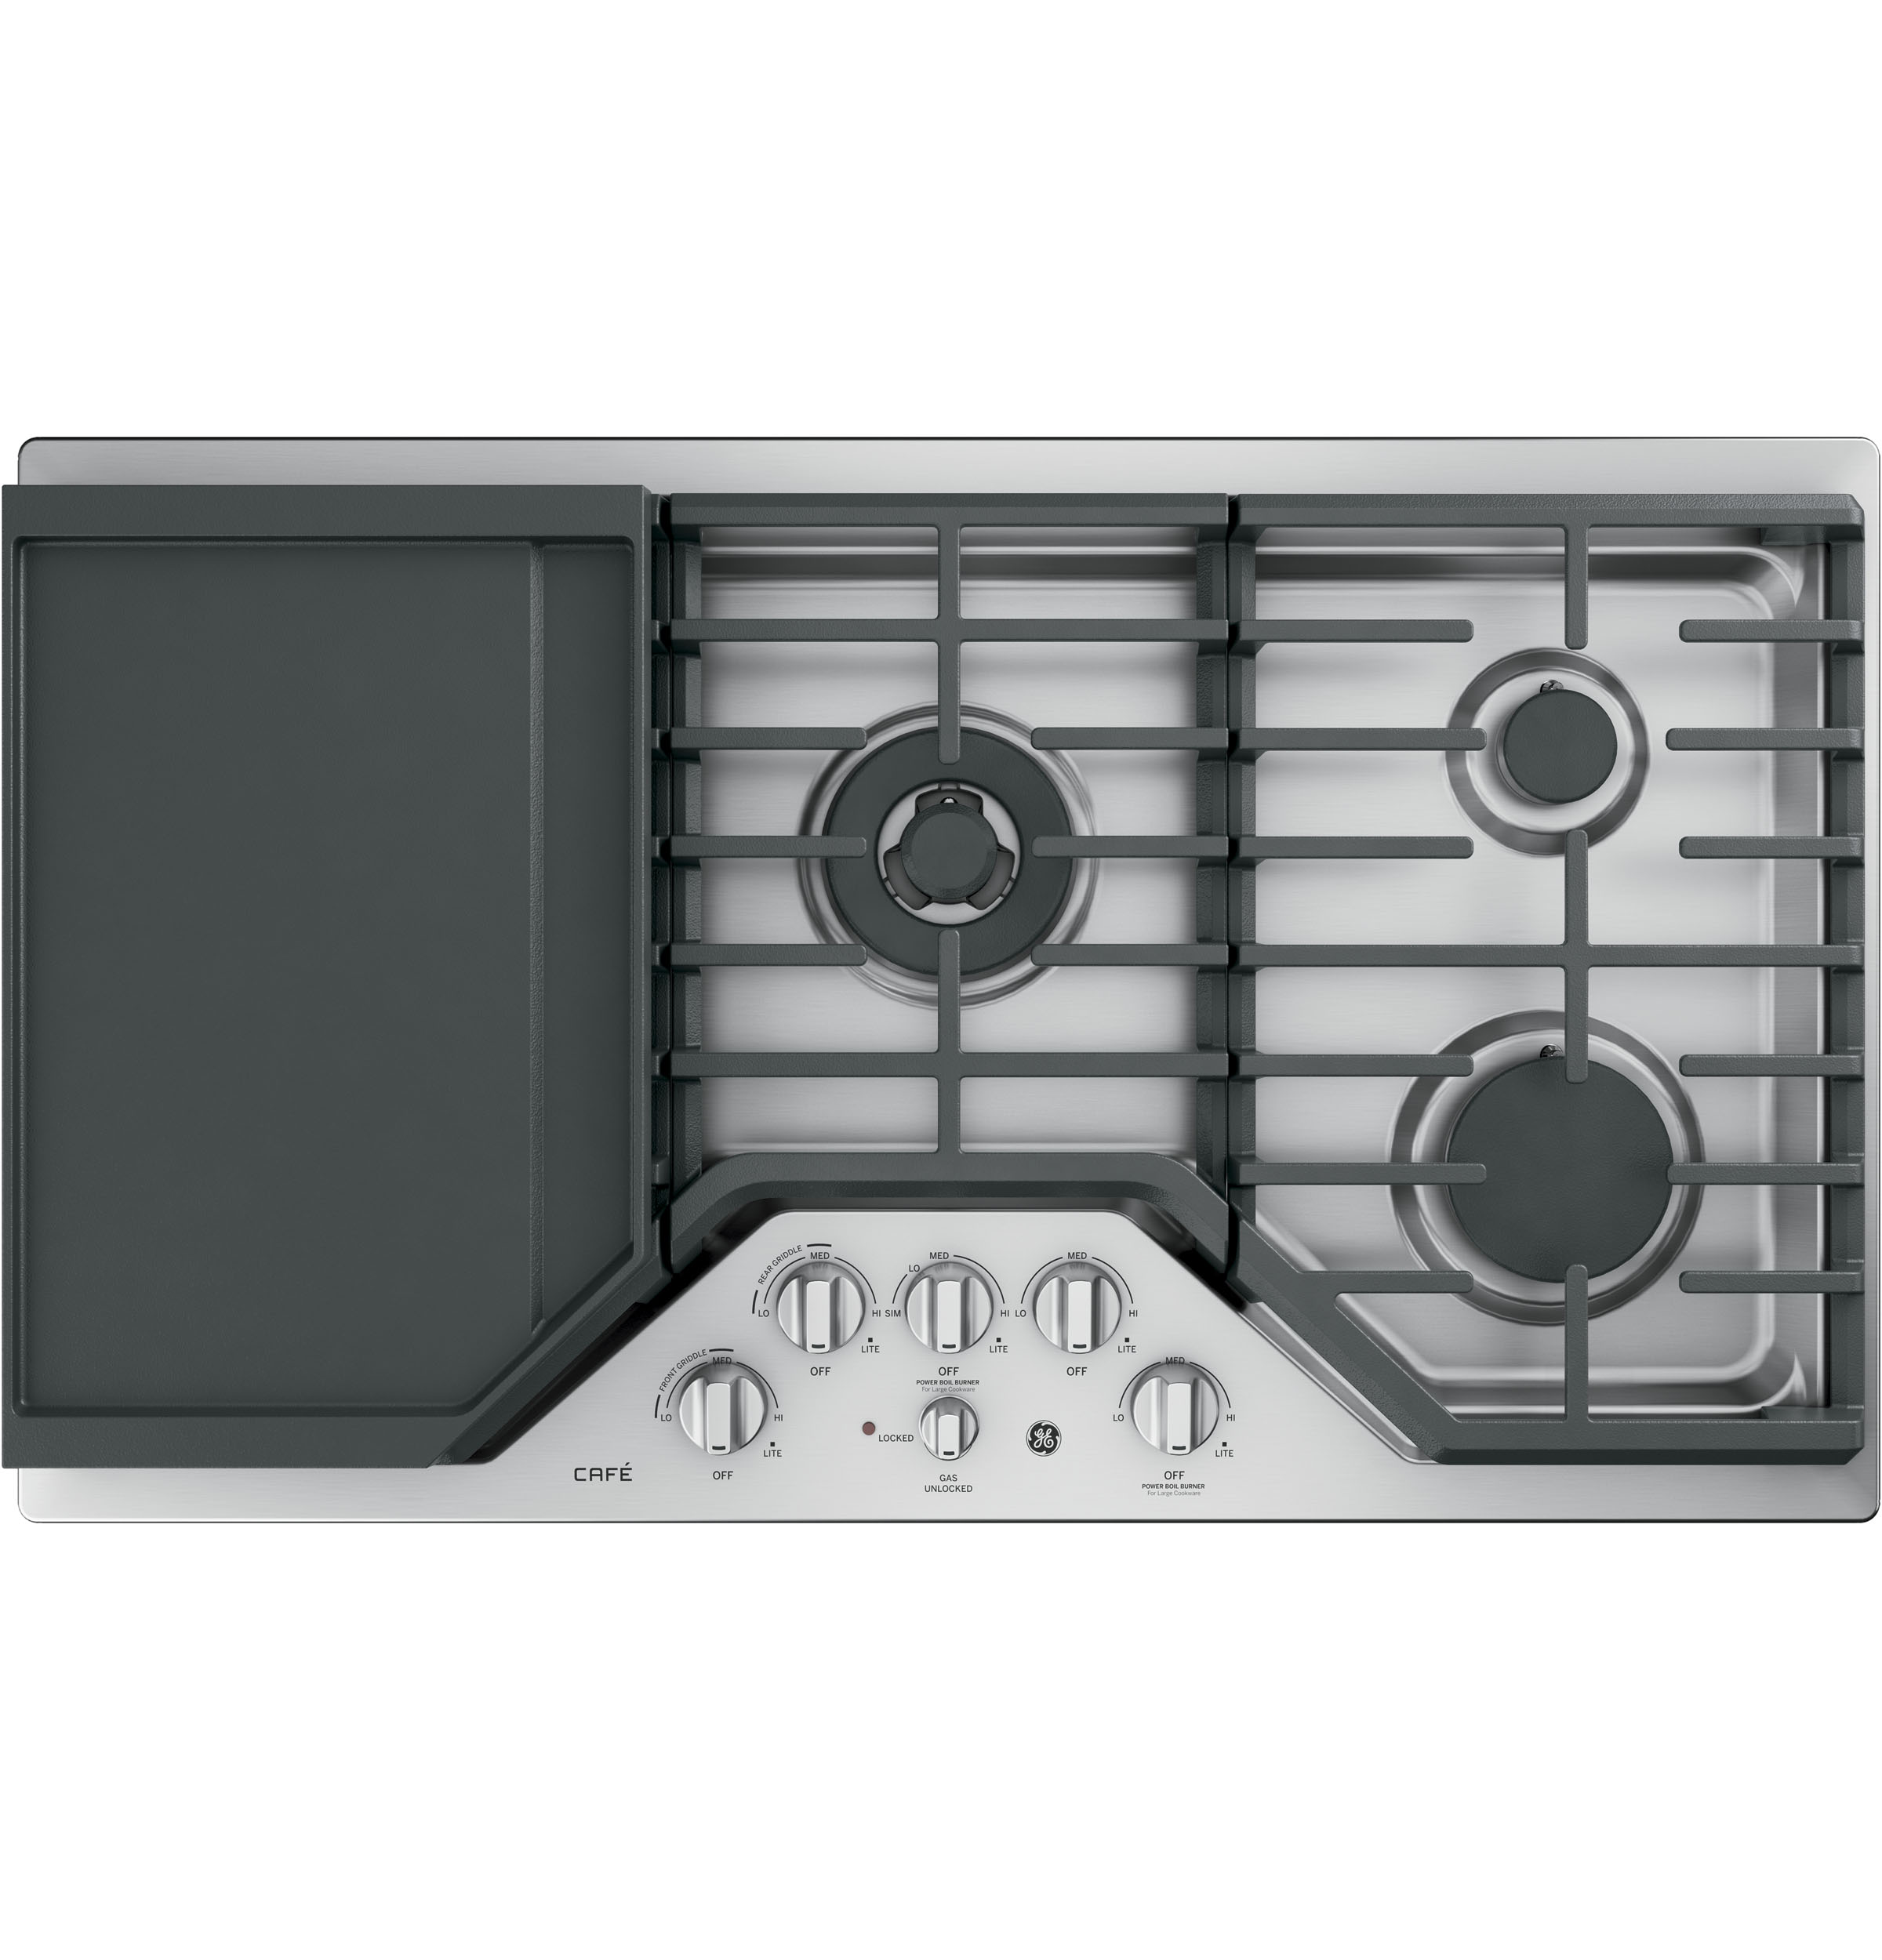 "GE Cafe GE Café™ Series 36"" Built-In Gas Cooktop"